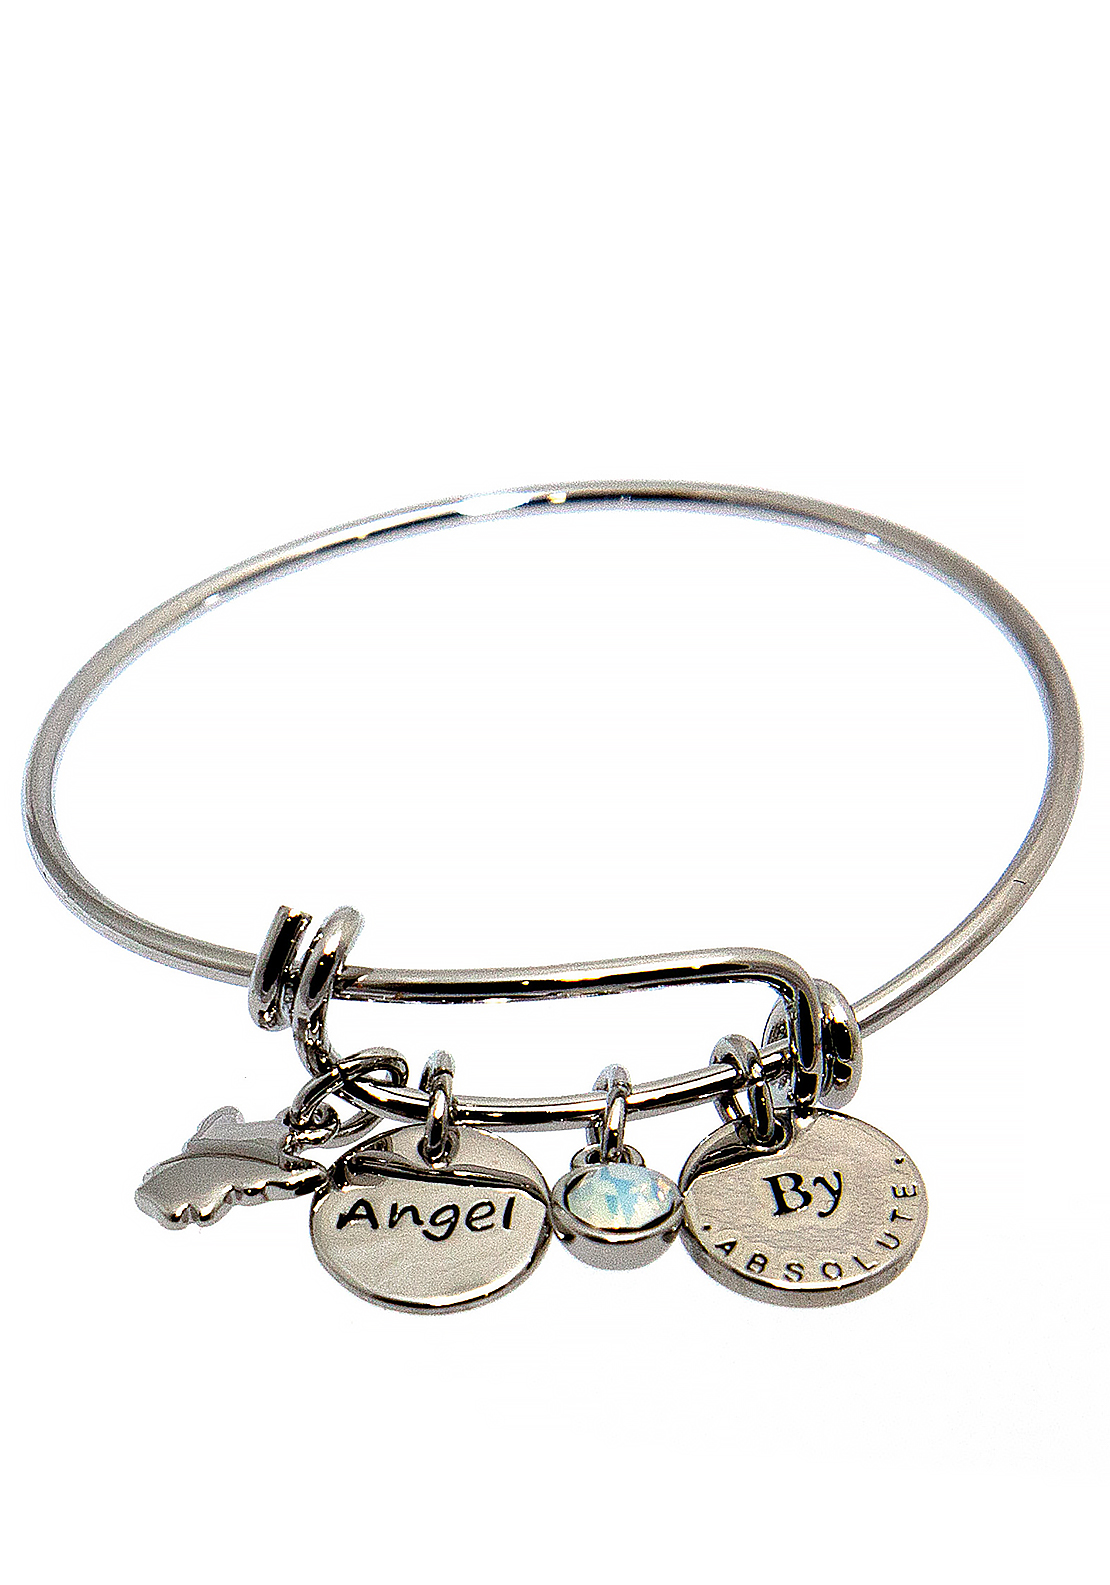 Absolute Jewellery Girls Angel Charm Bangle, Silver